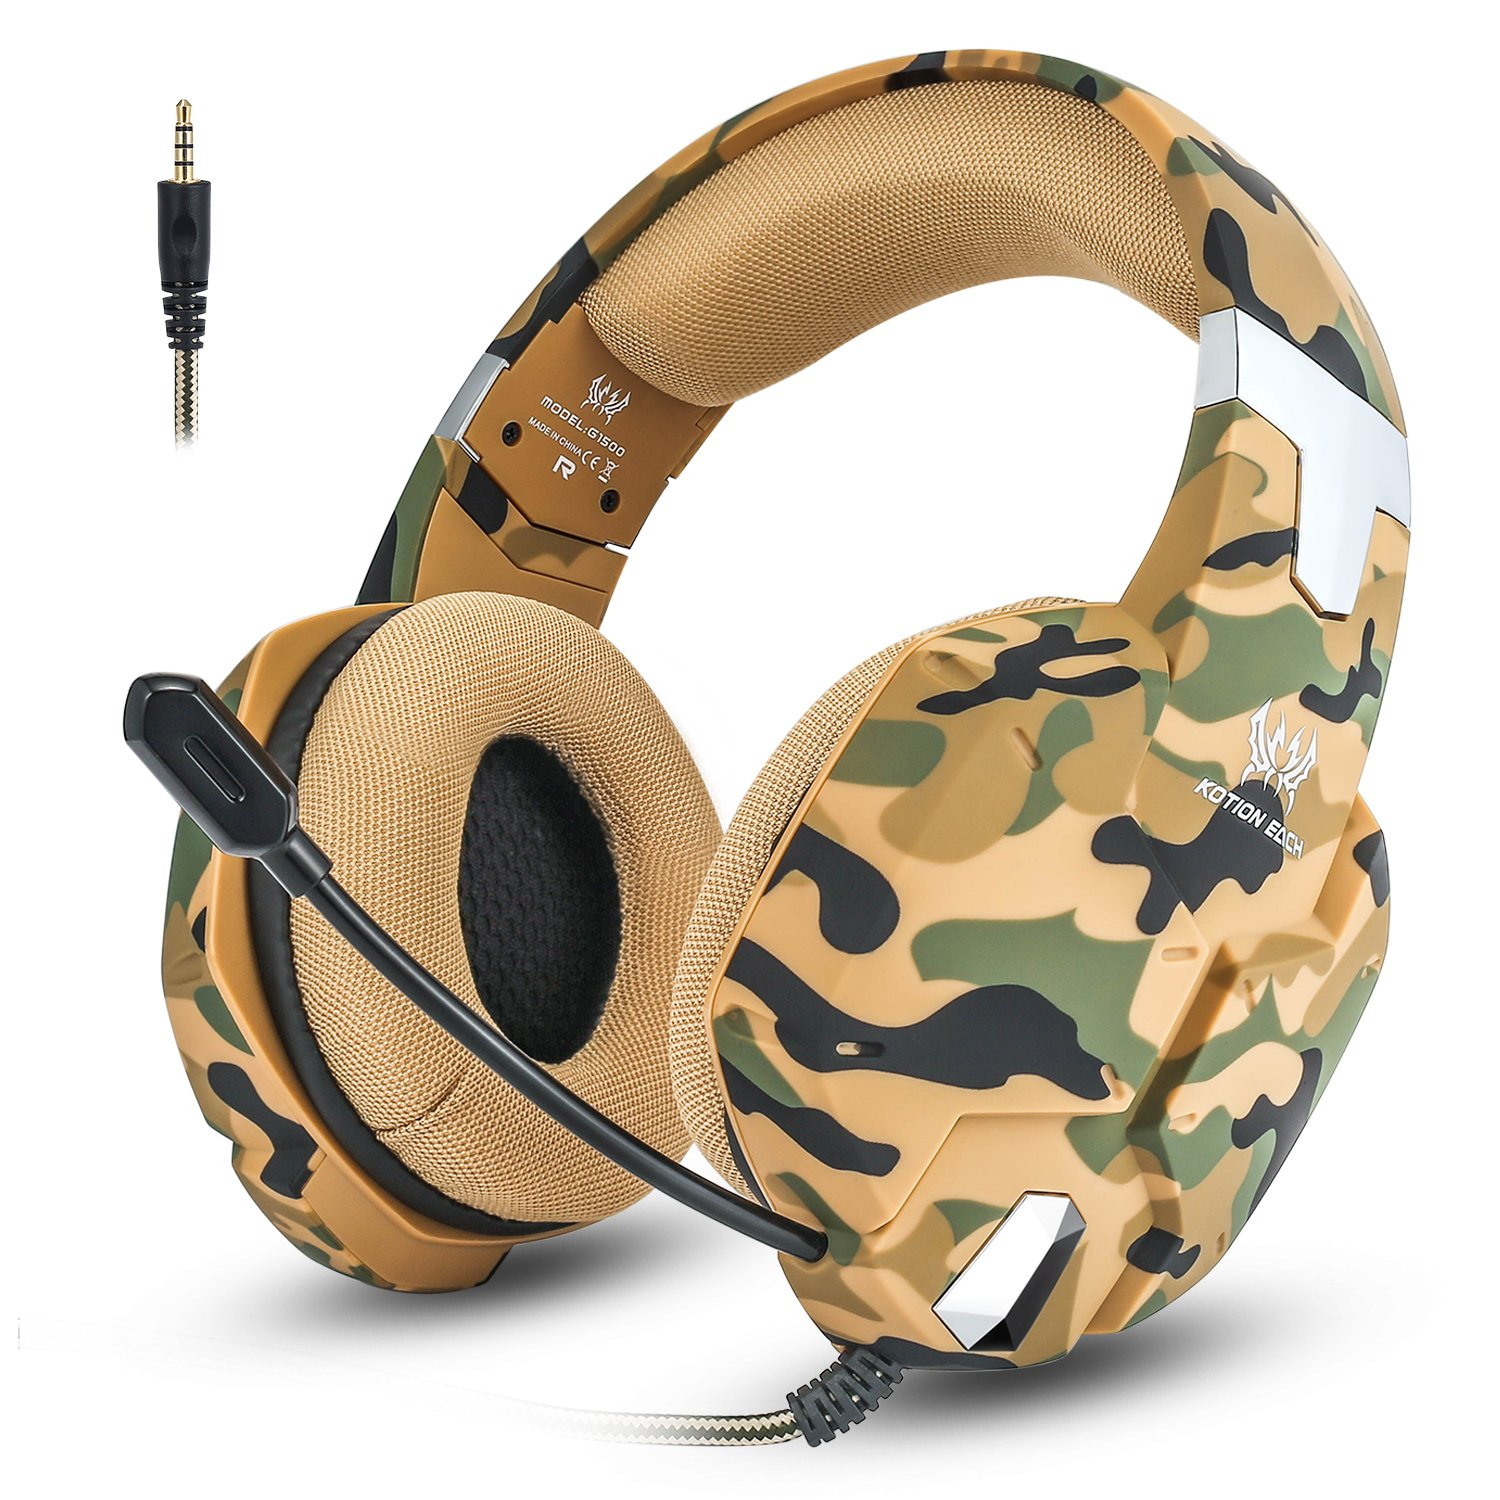 Jeecoo G1500 Gaming Headset for PS4/ PC/Xbox One/Nintendo Switch Gaming Headphones with Mic Volume Control, Soft Memory Earmuff, Surround Sound, Noise Isolating by Jeecoo